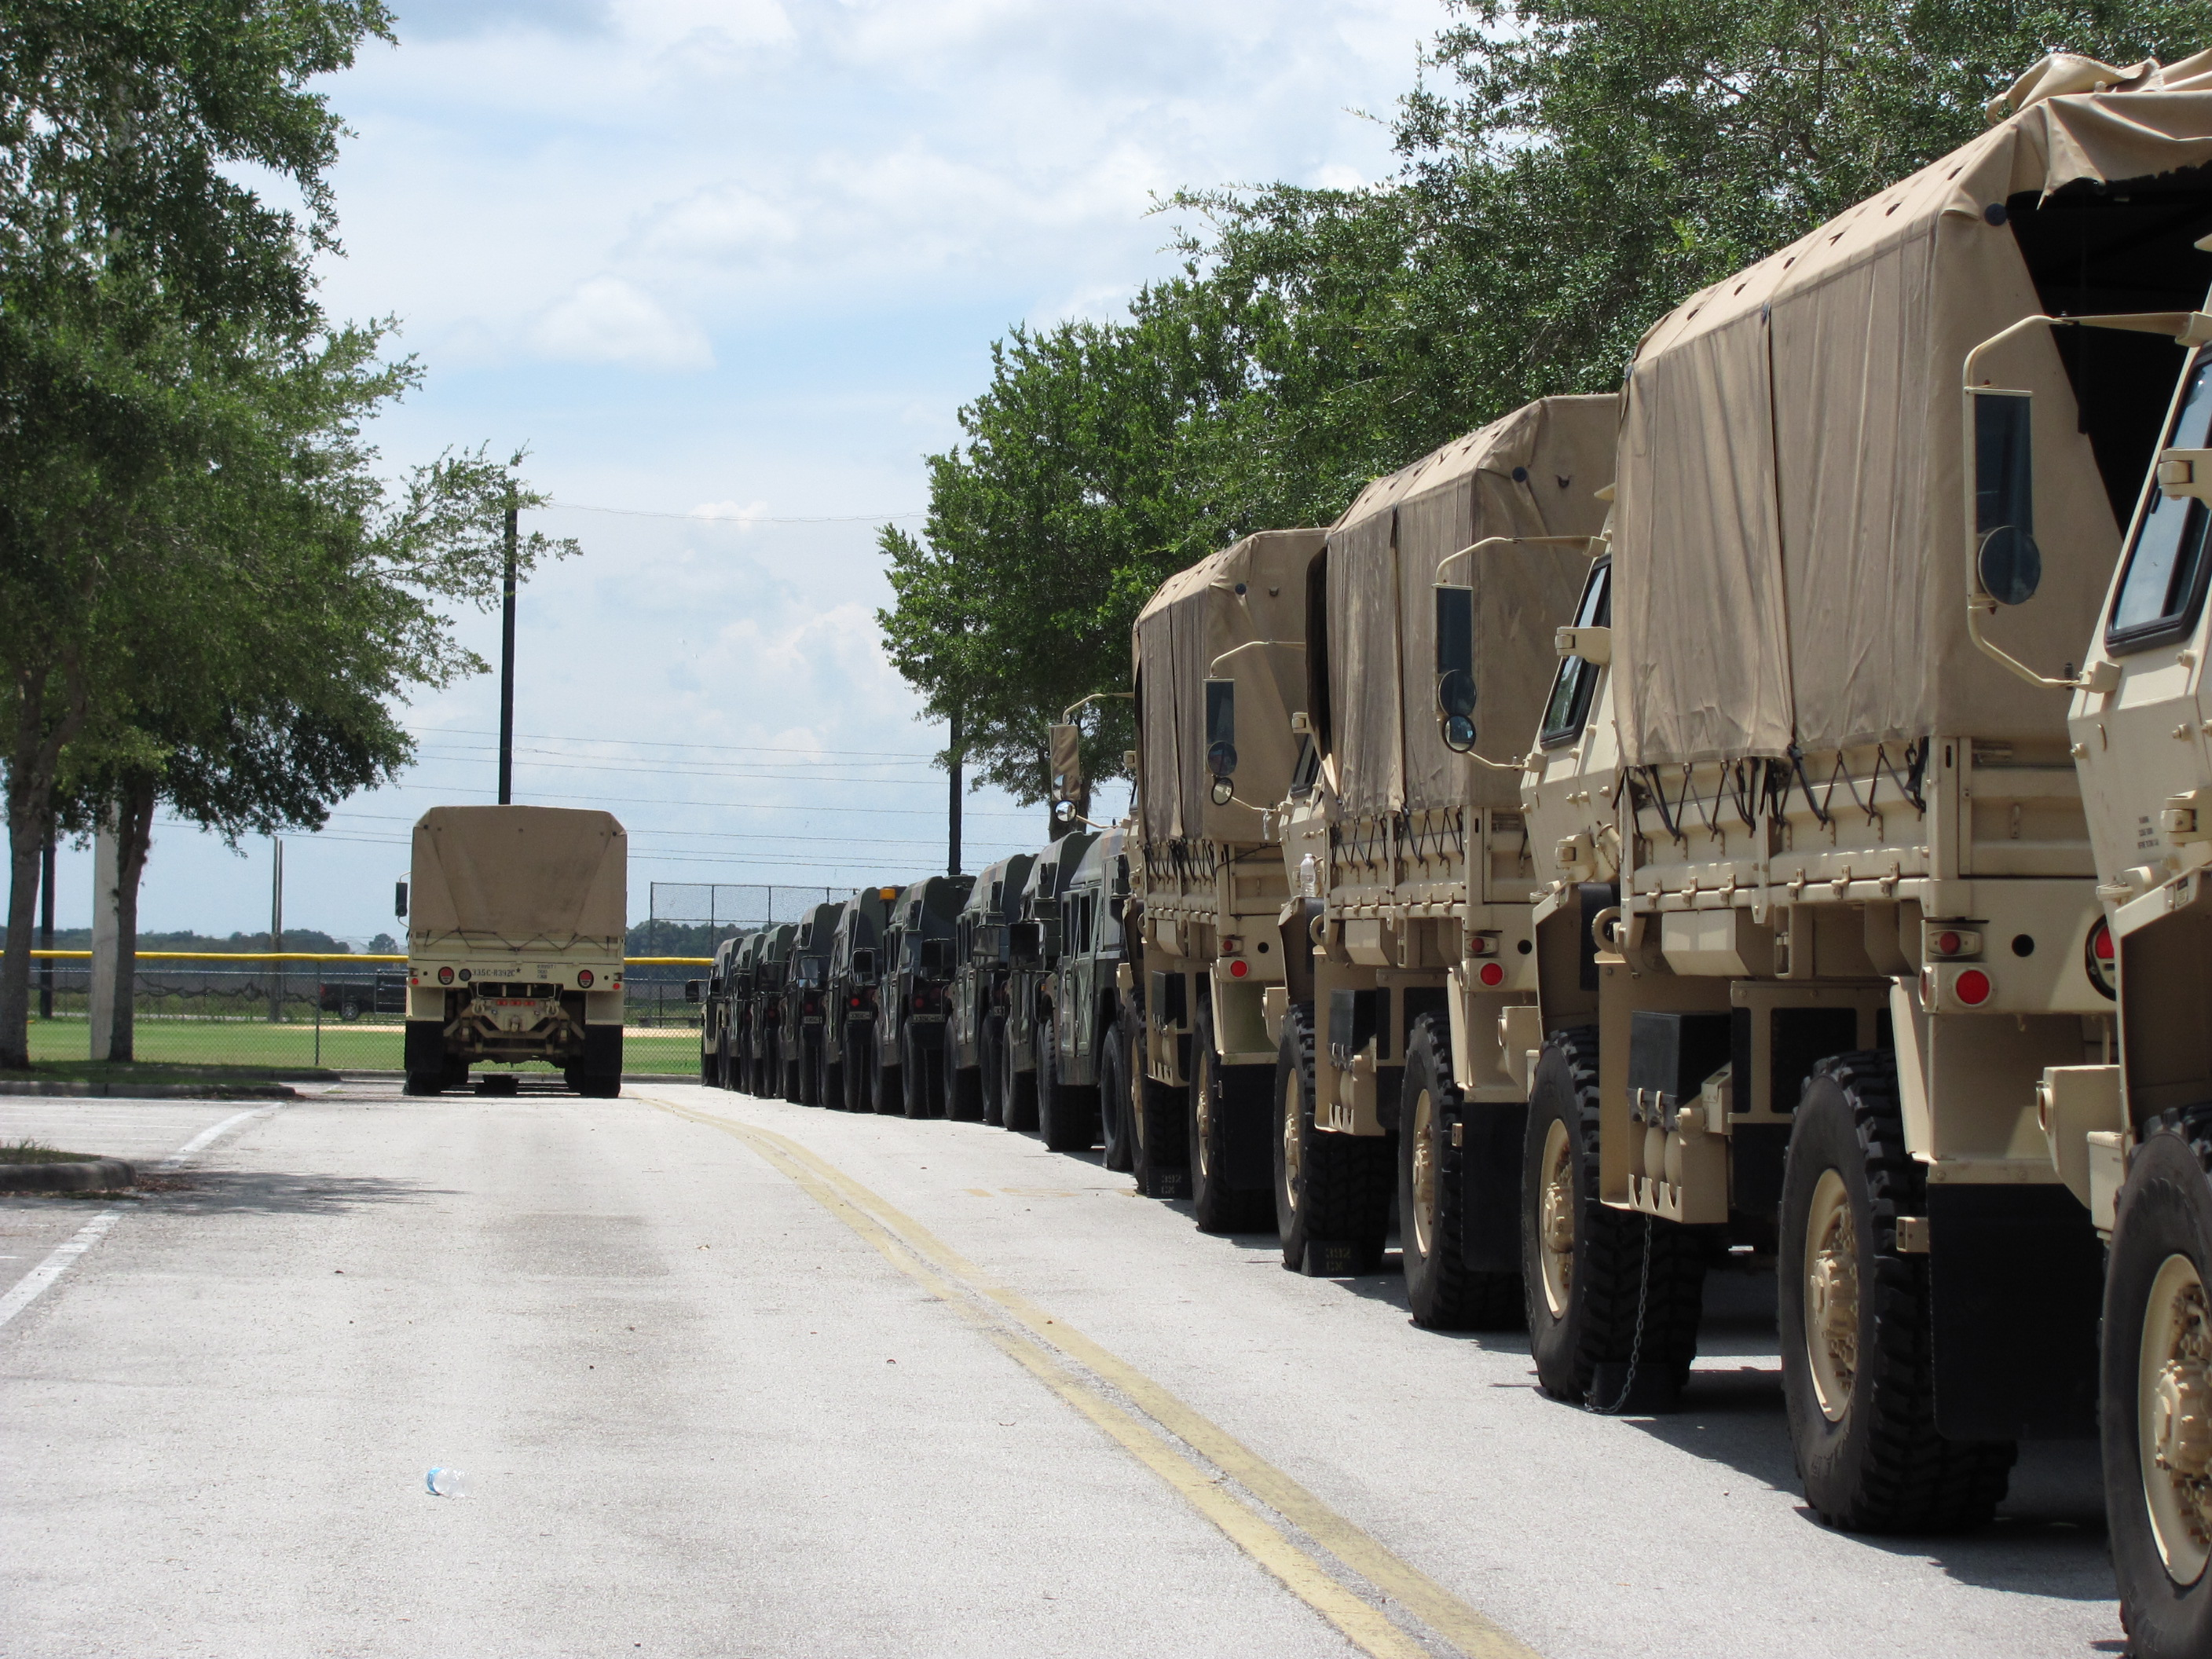 military occupy ocala, ocala news, marion county news, military, jade helm 15